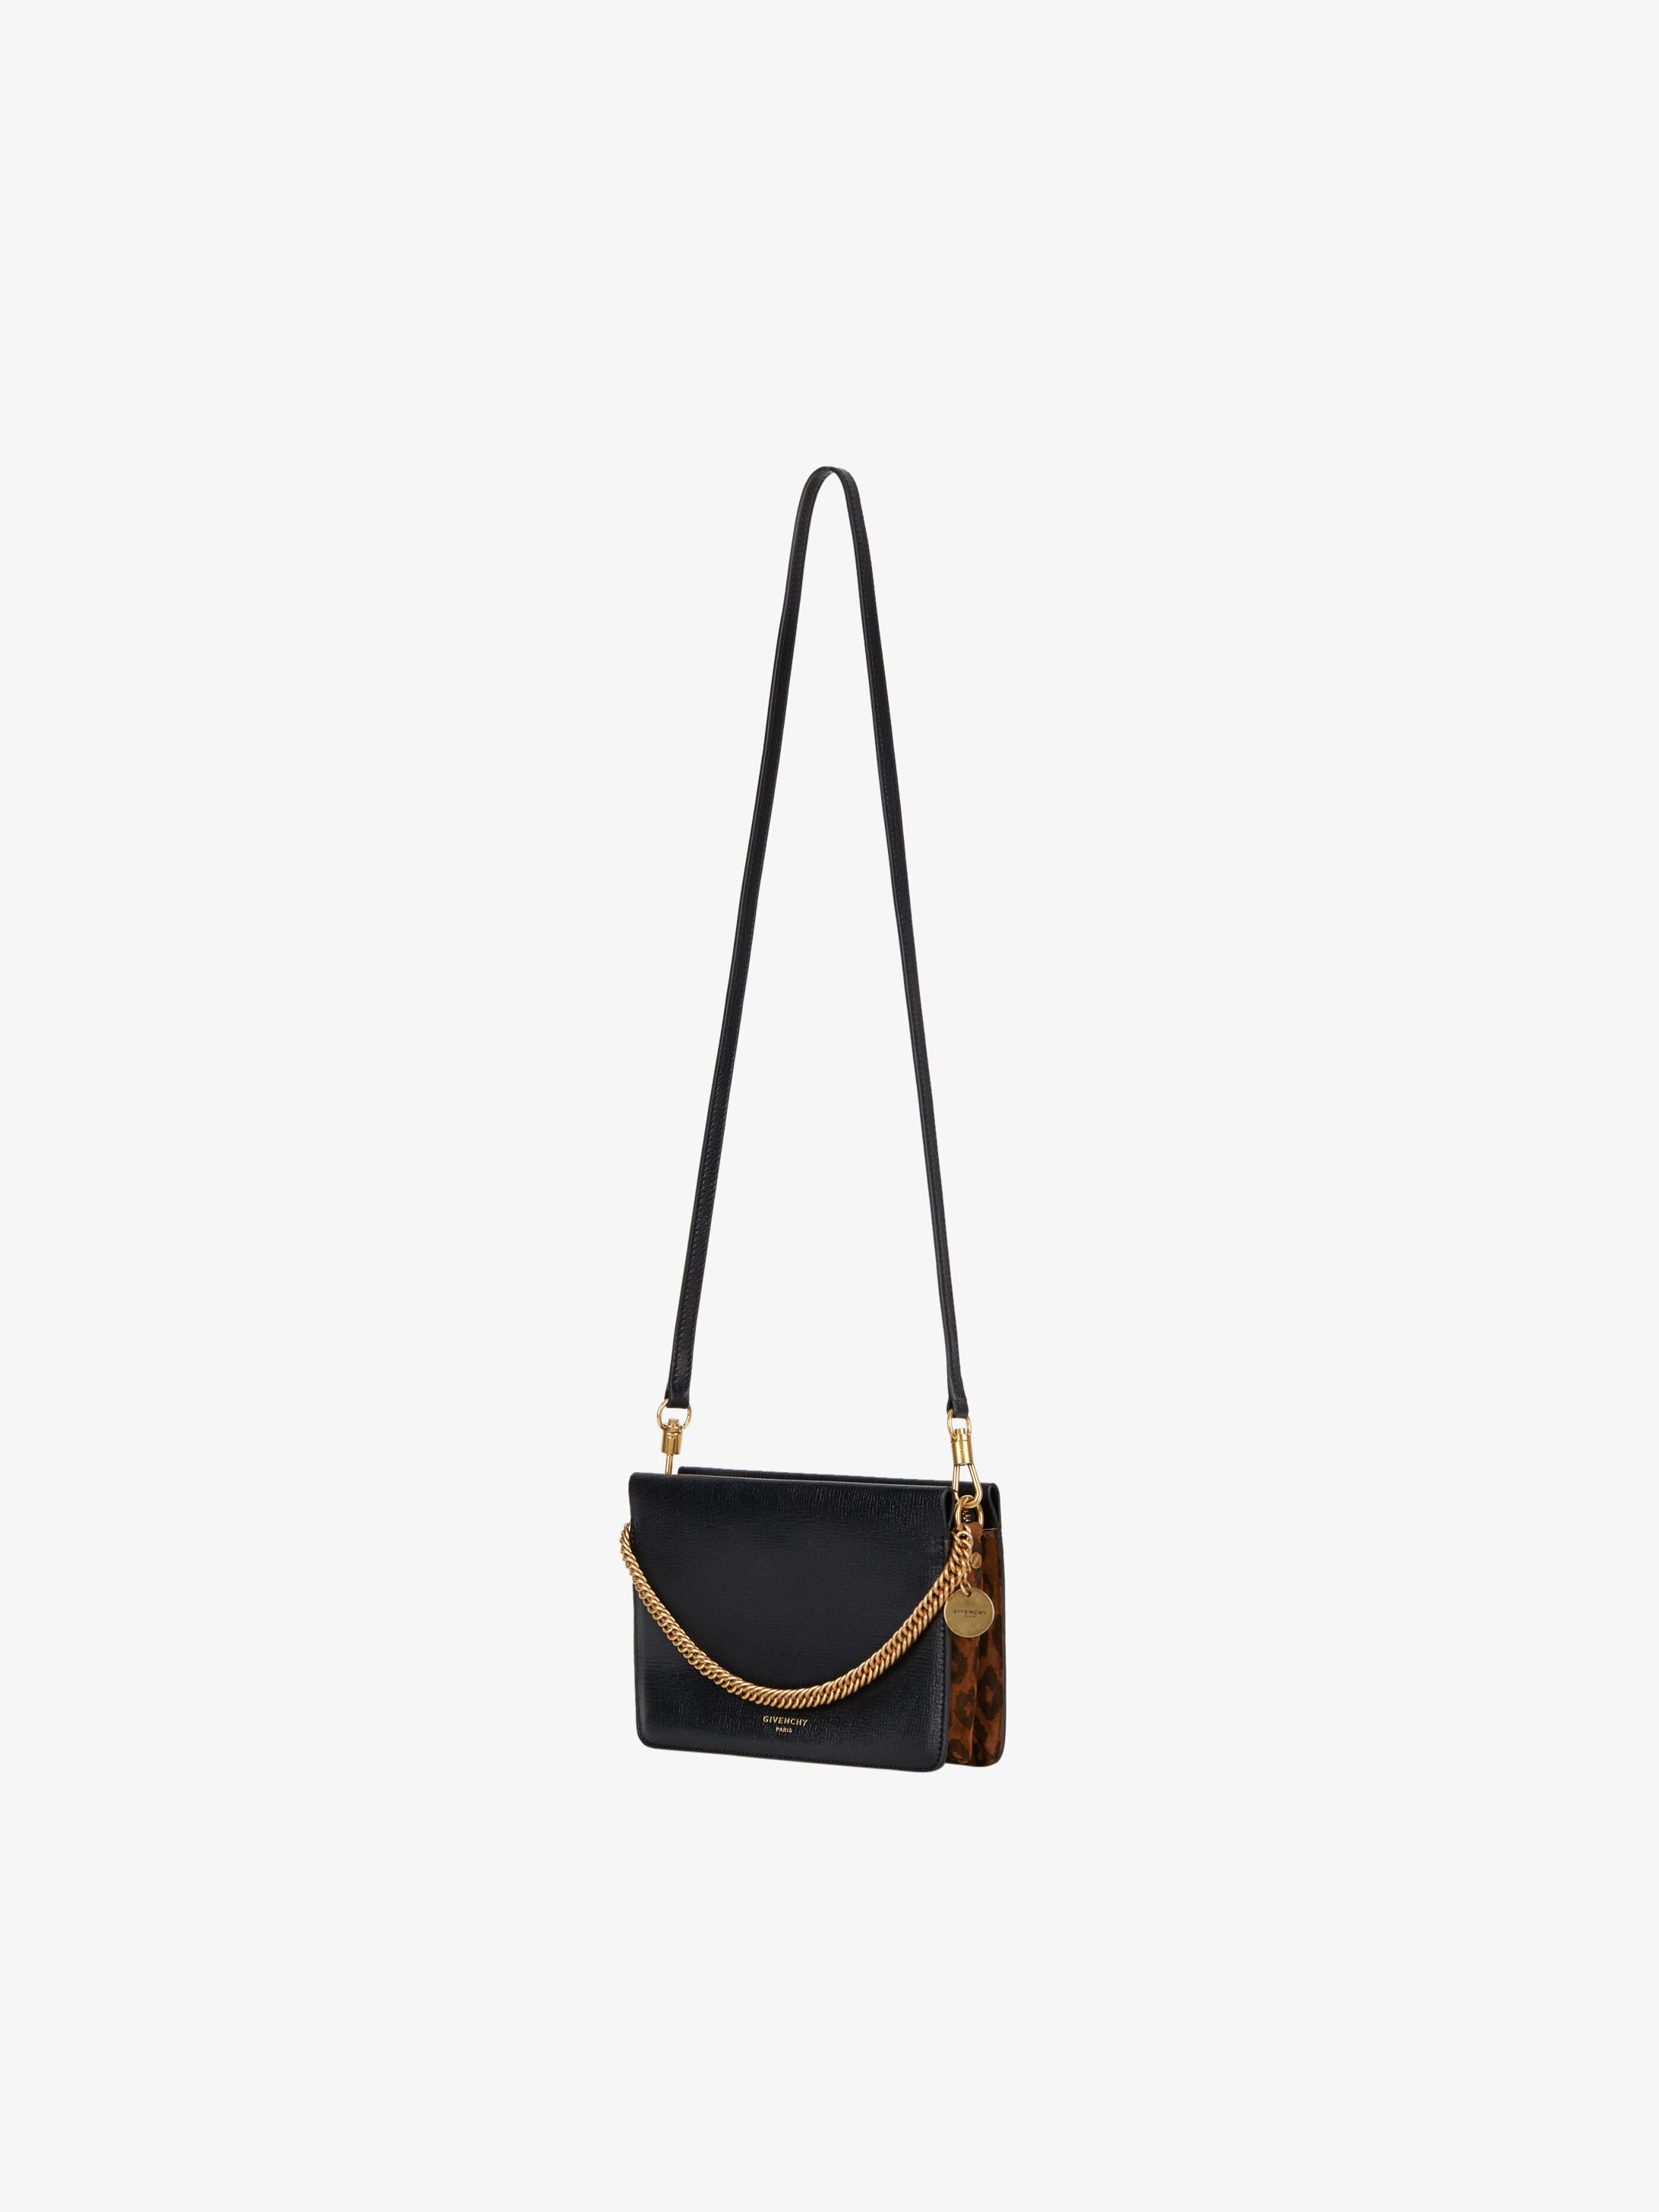 Women s Cross-body Bags collection by Givenchy.   GIVENCHY Paris 43cca4c31c